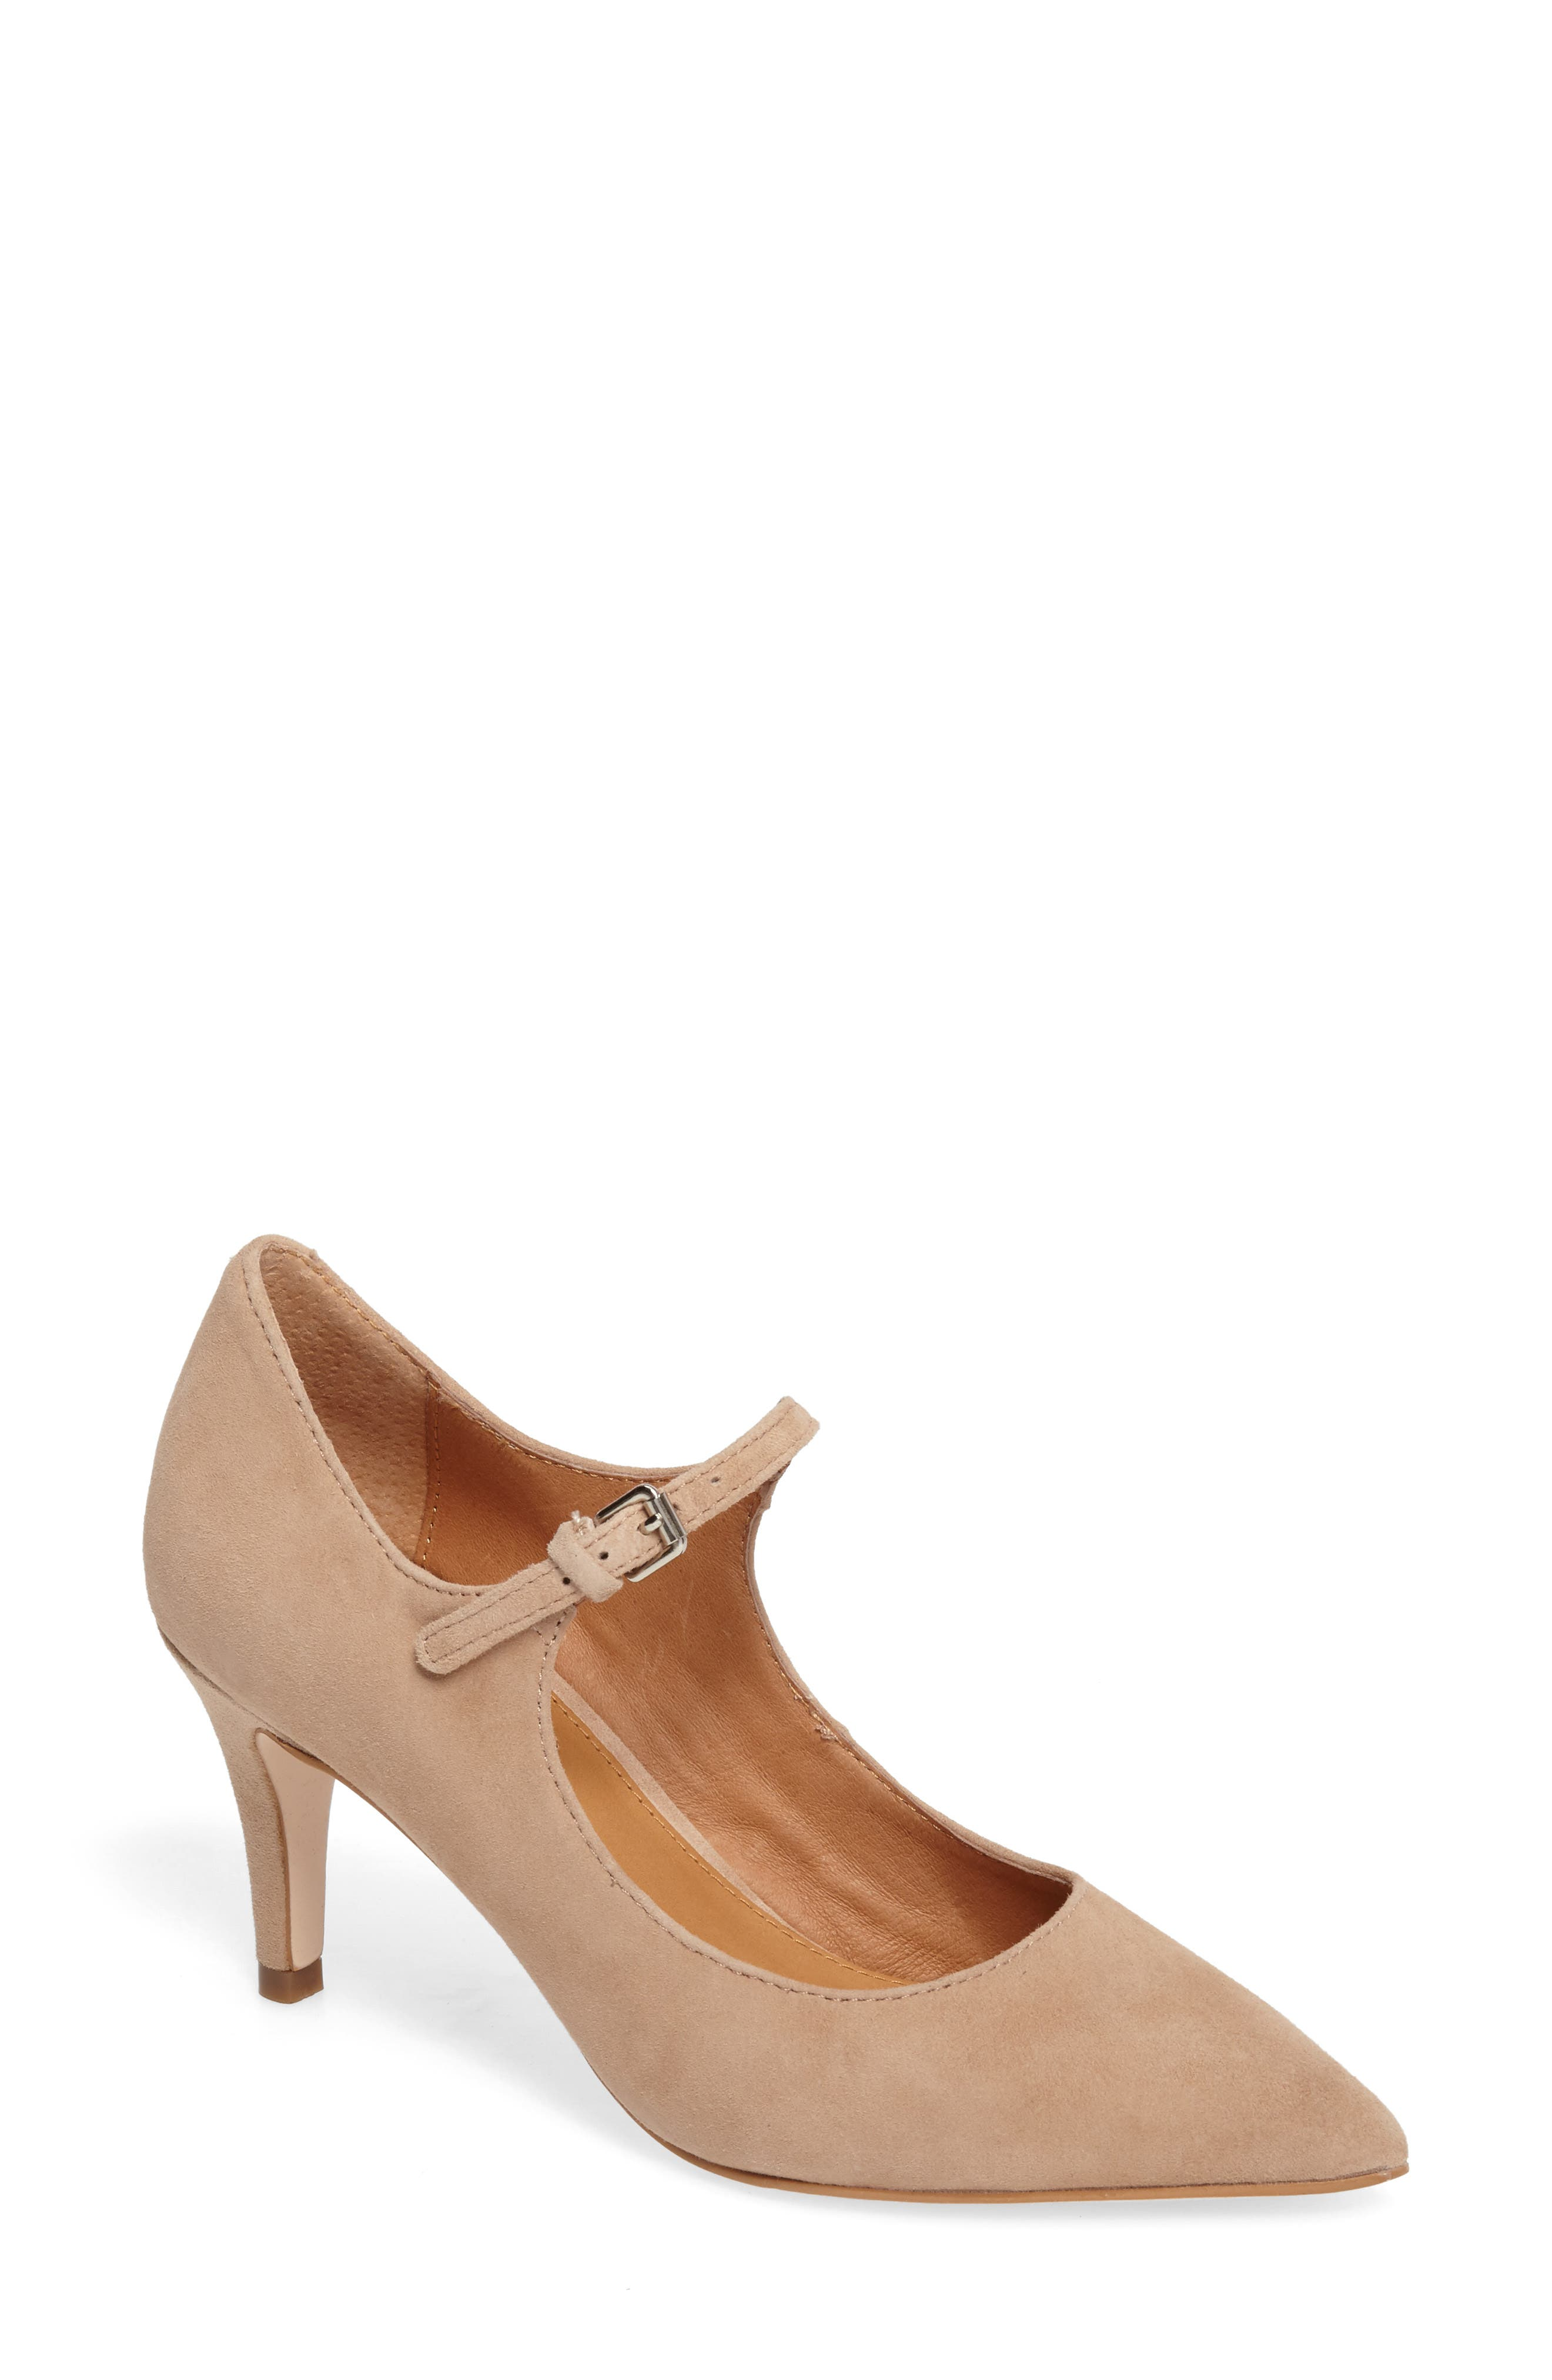 Coy Pointy Toe Pump,                         Main,                         color, 250